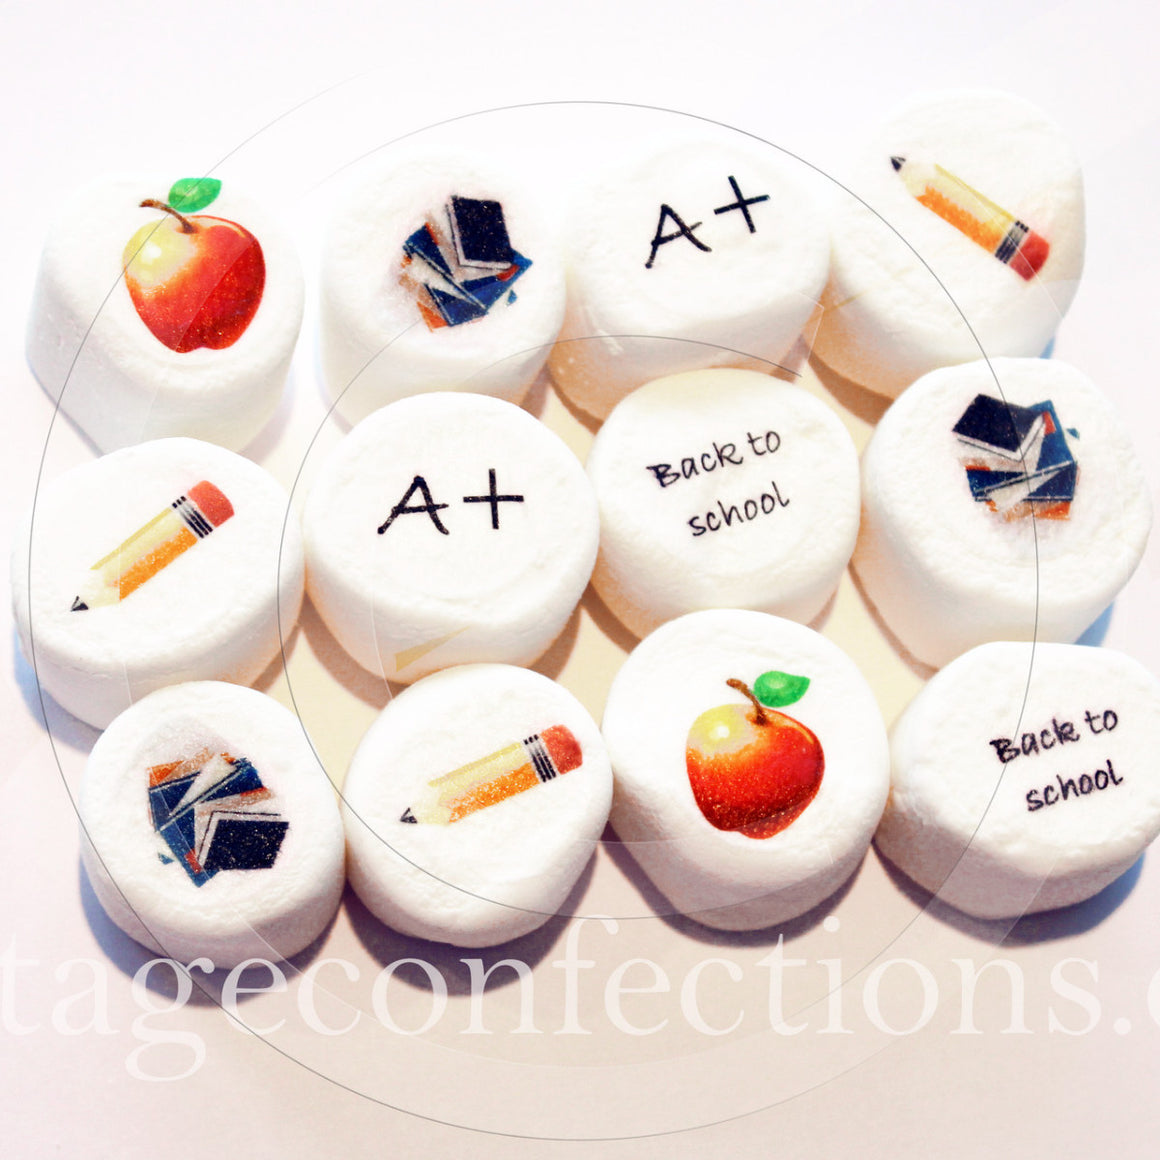 Back to school Teacher gift edible art marshmallows by I Want Candy!